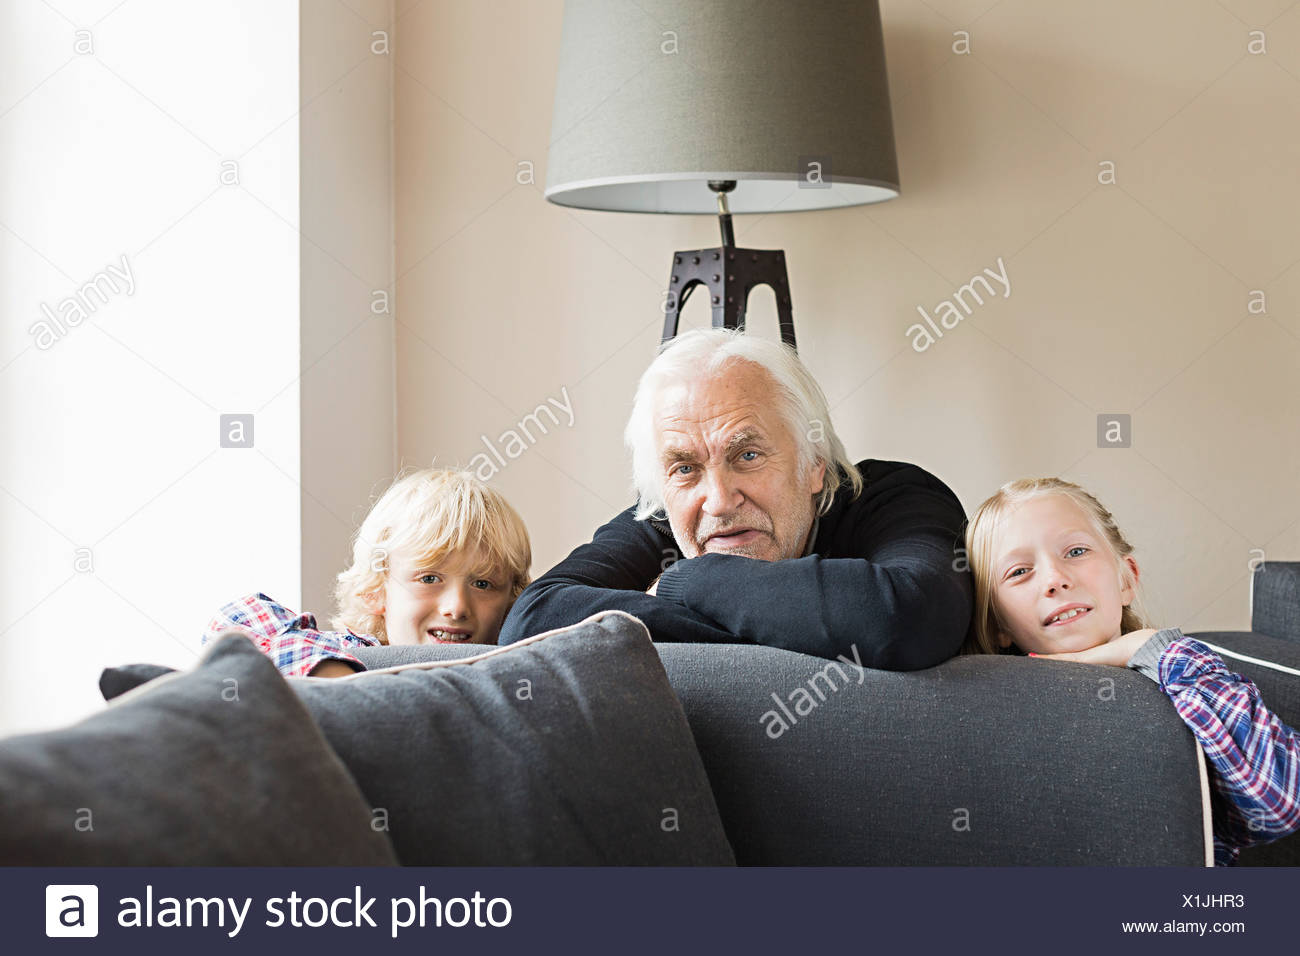 Portrait of grandfather and grandchildren leaning on sofa - Stock Image